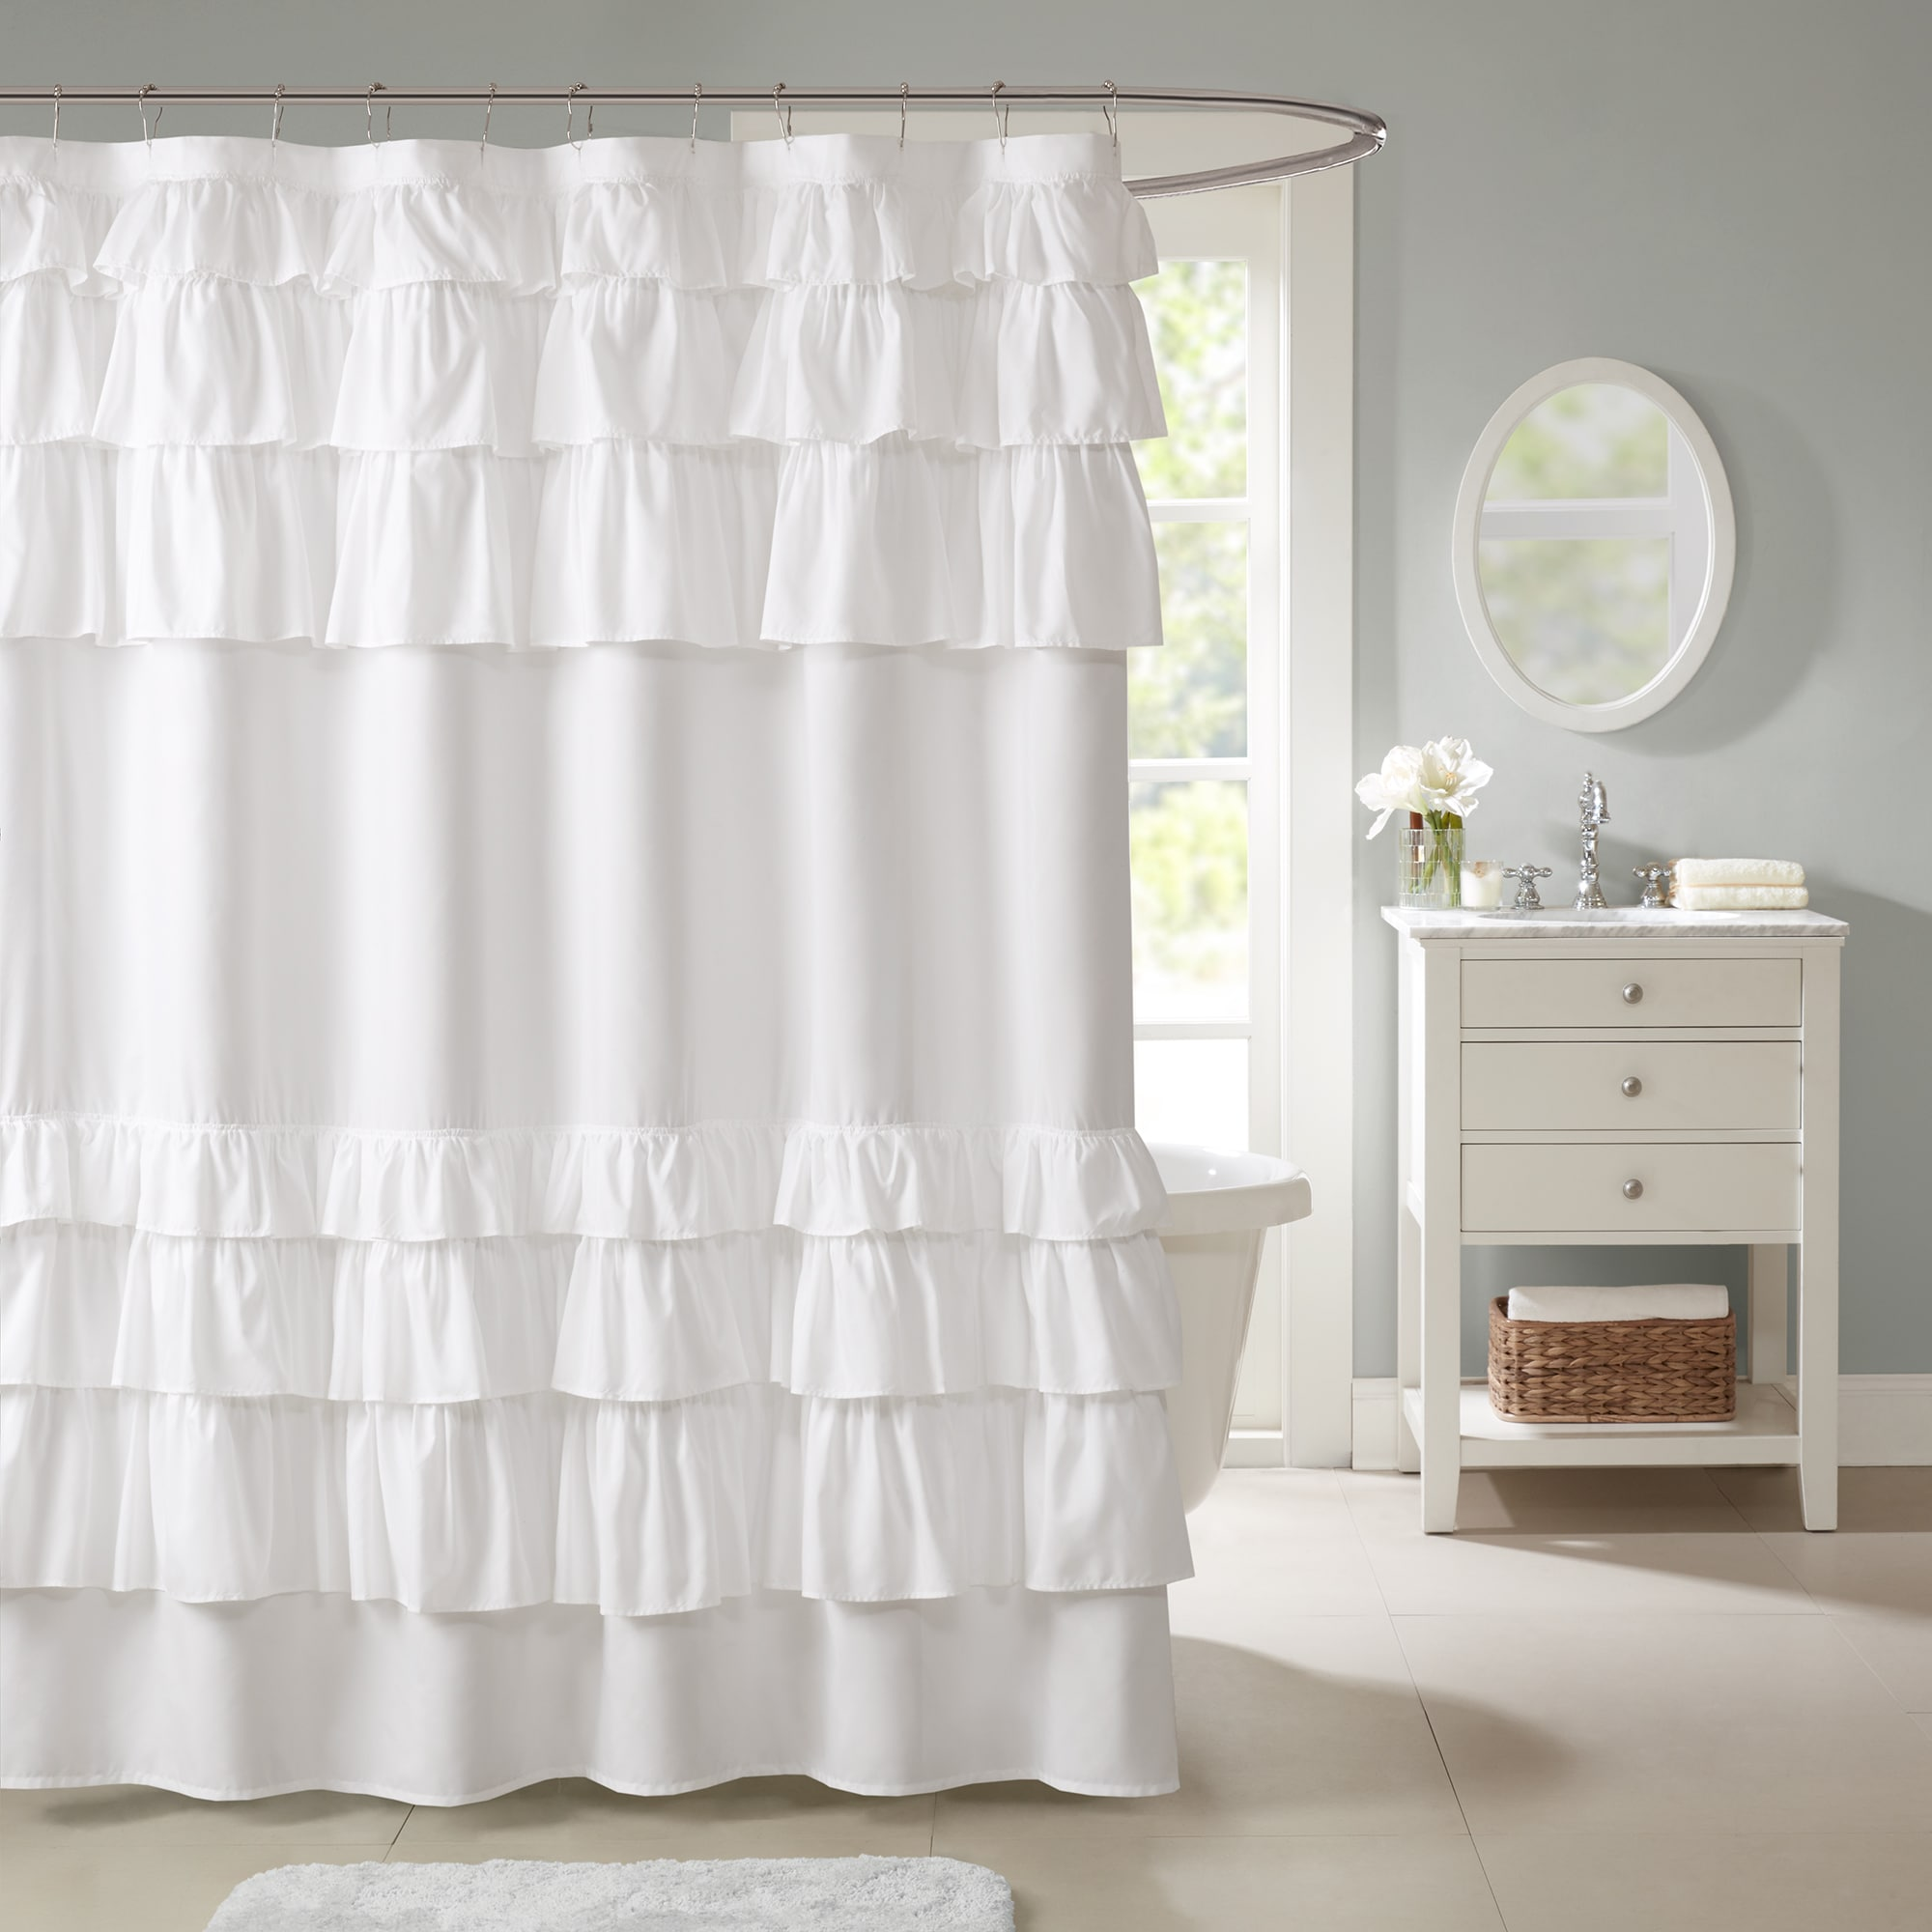 Buy Shower Curtains Online at Overstock.com | Our Best Shower ...